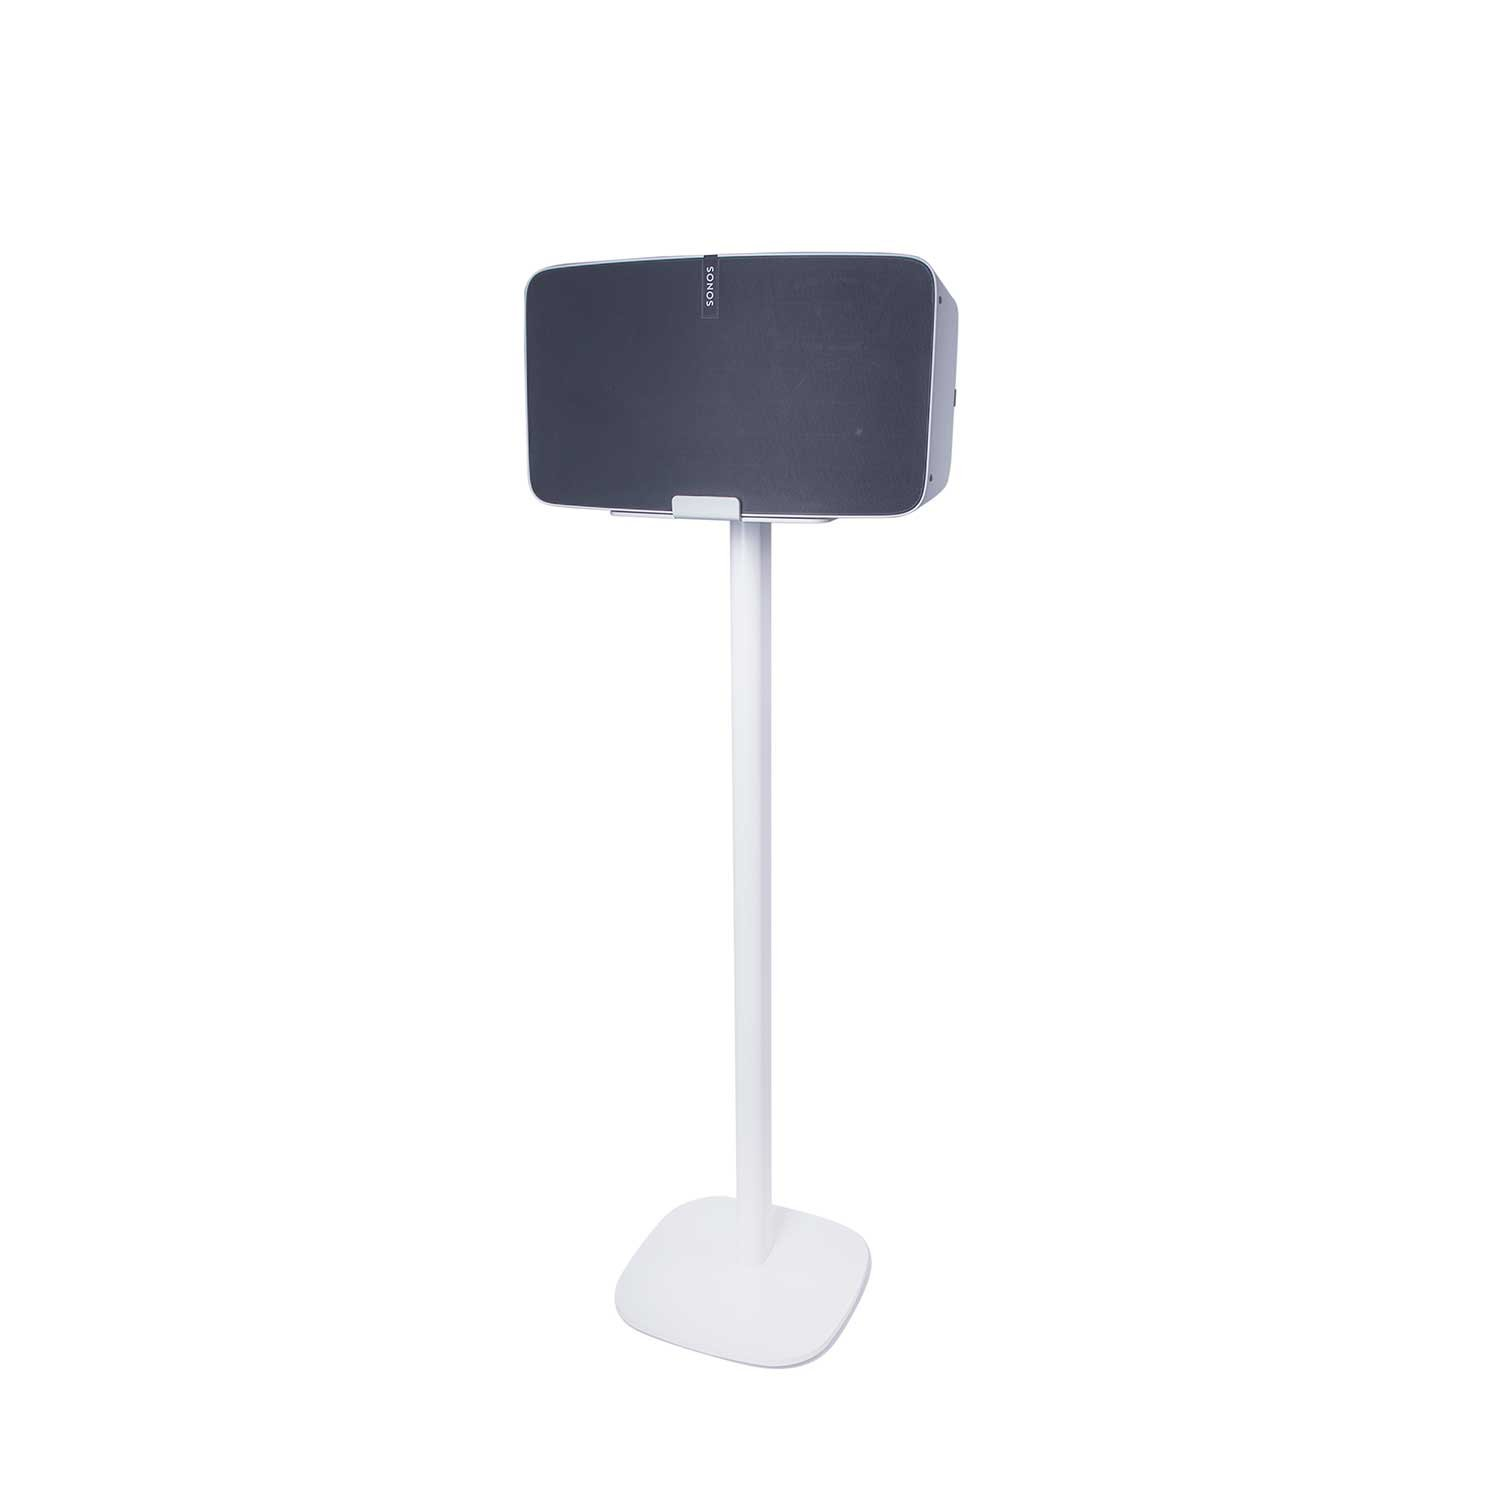 Vebos floor stand Sonos Play 5 gen 2 white en optimal experience in every room - Allows you to place your SONOS PLAY 5 exactly where you want it - Two years warranty